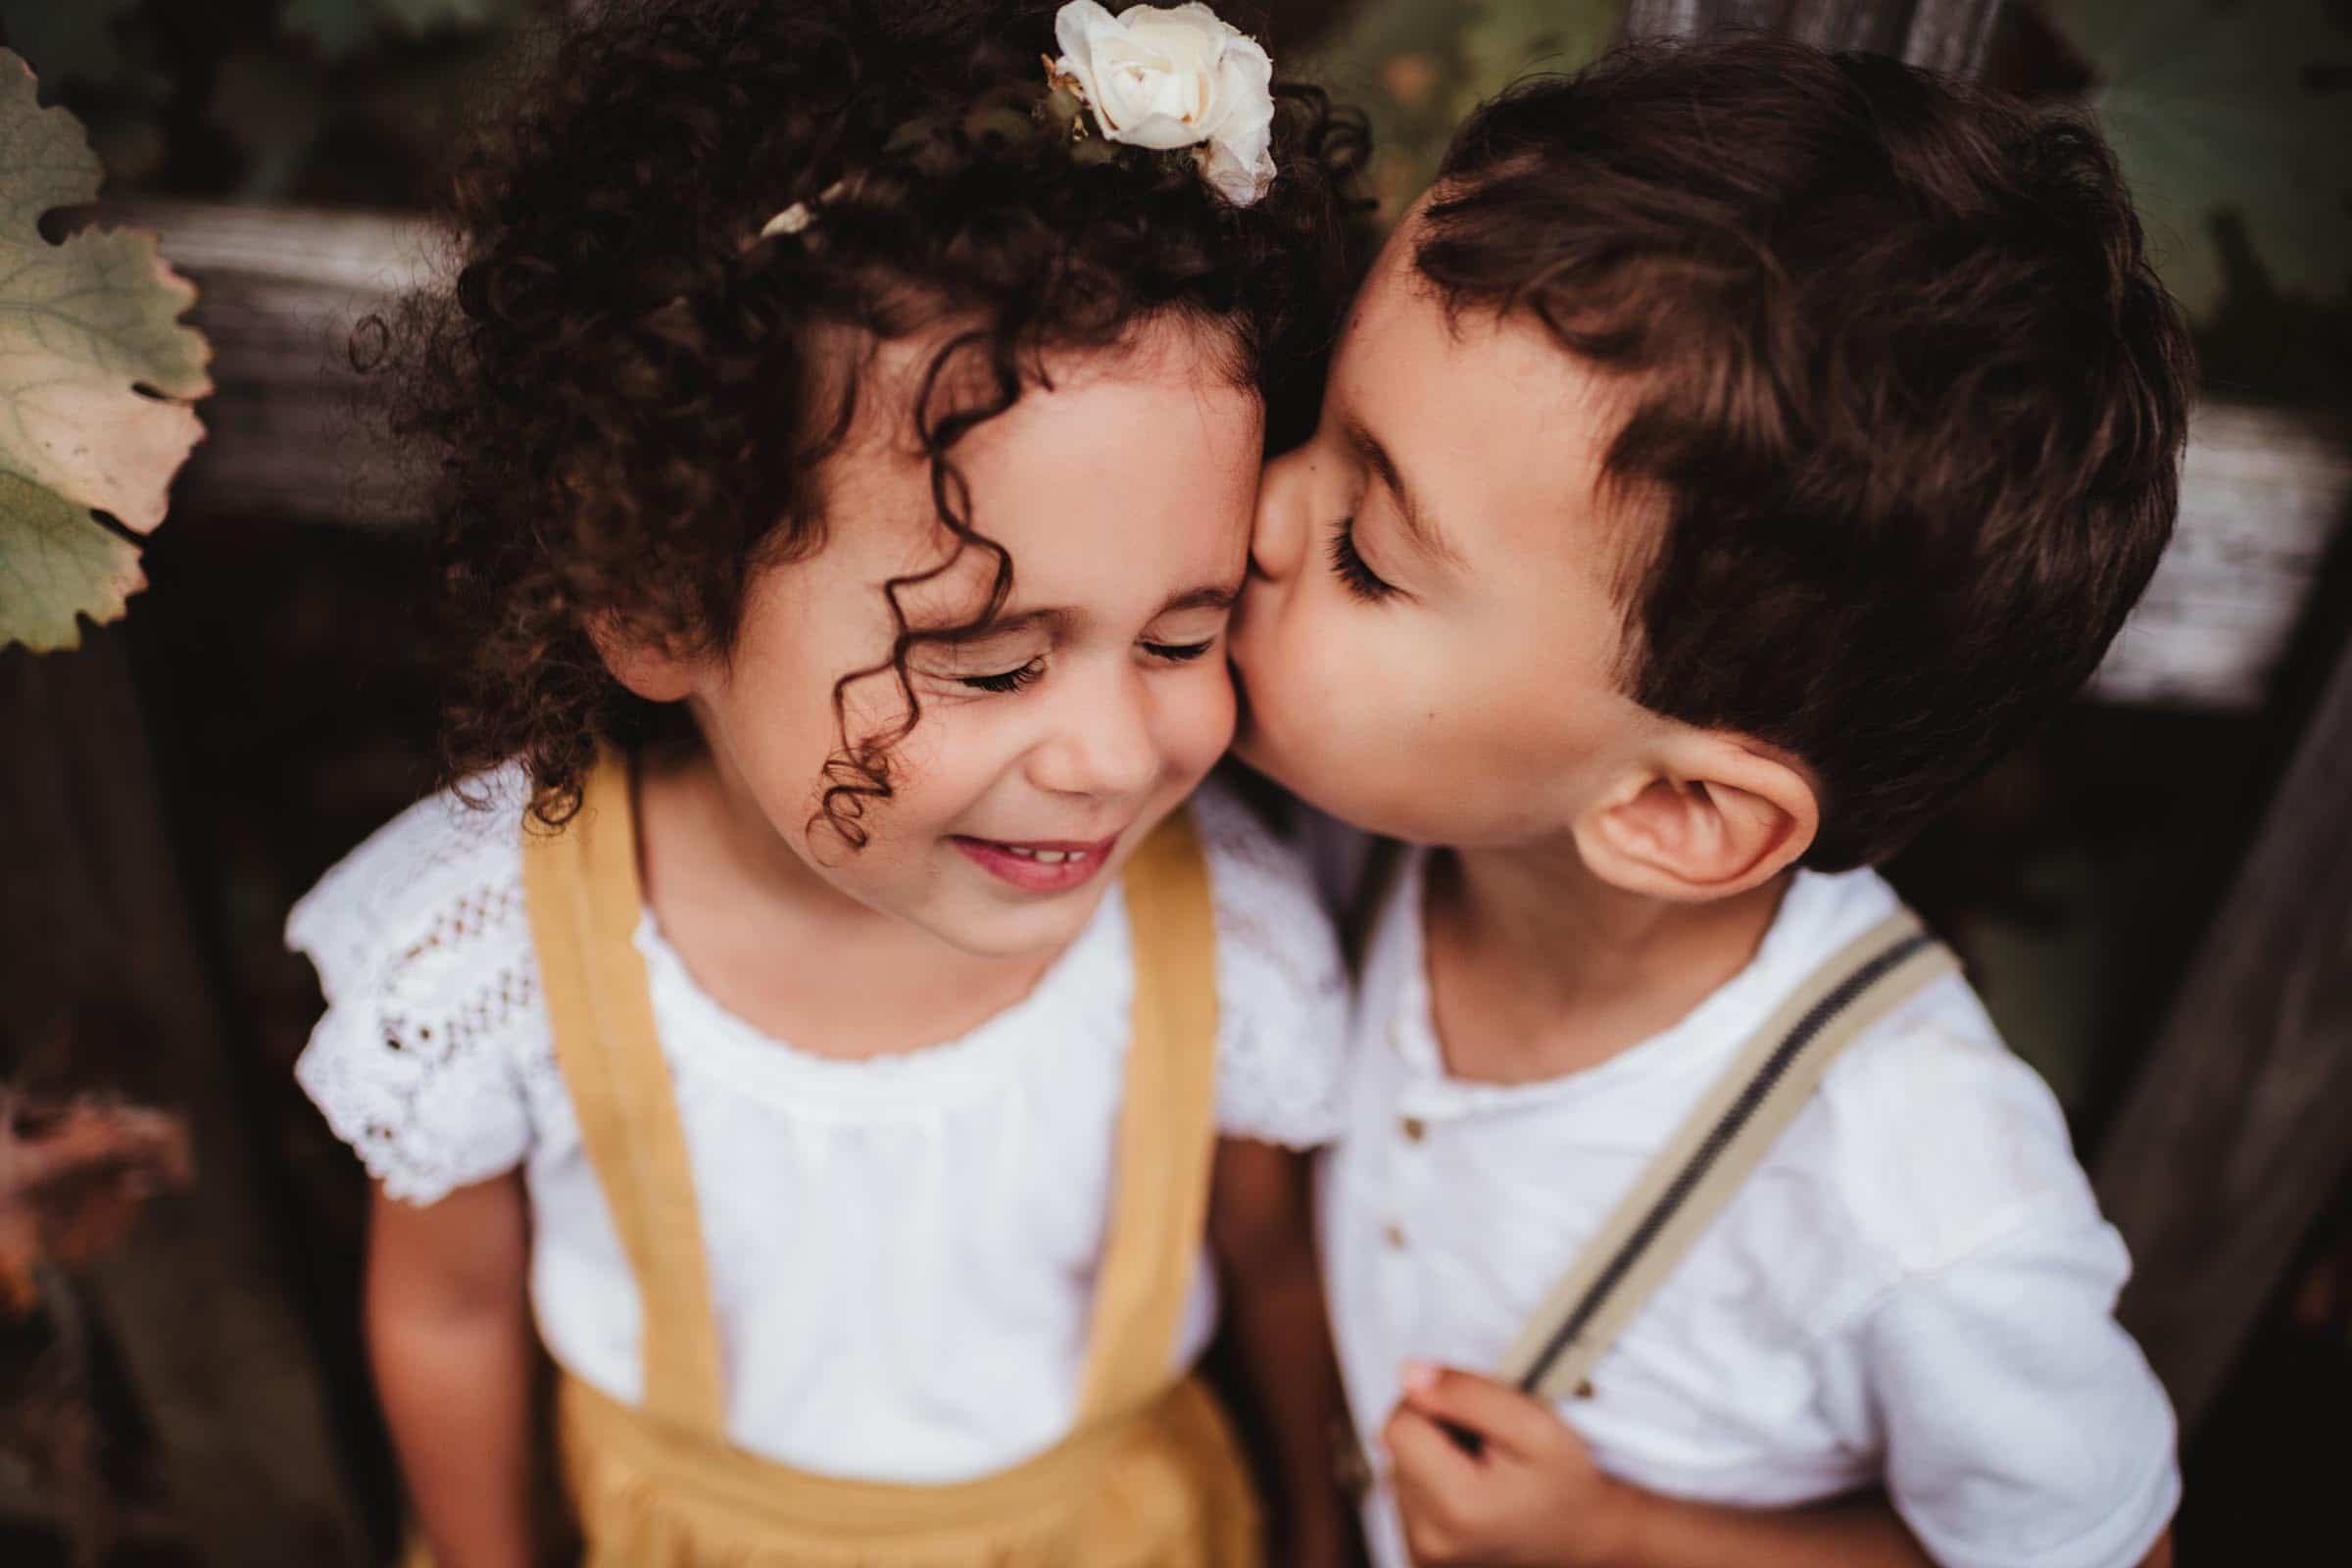 Brother Kissing Sister's Cheek